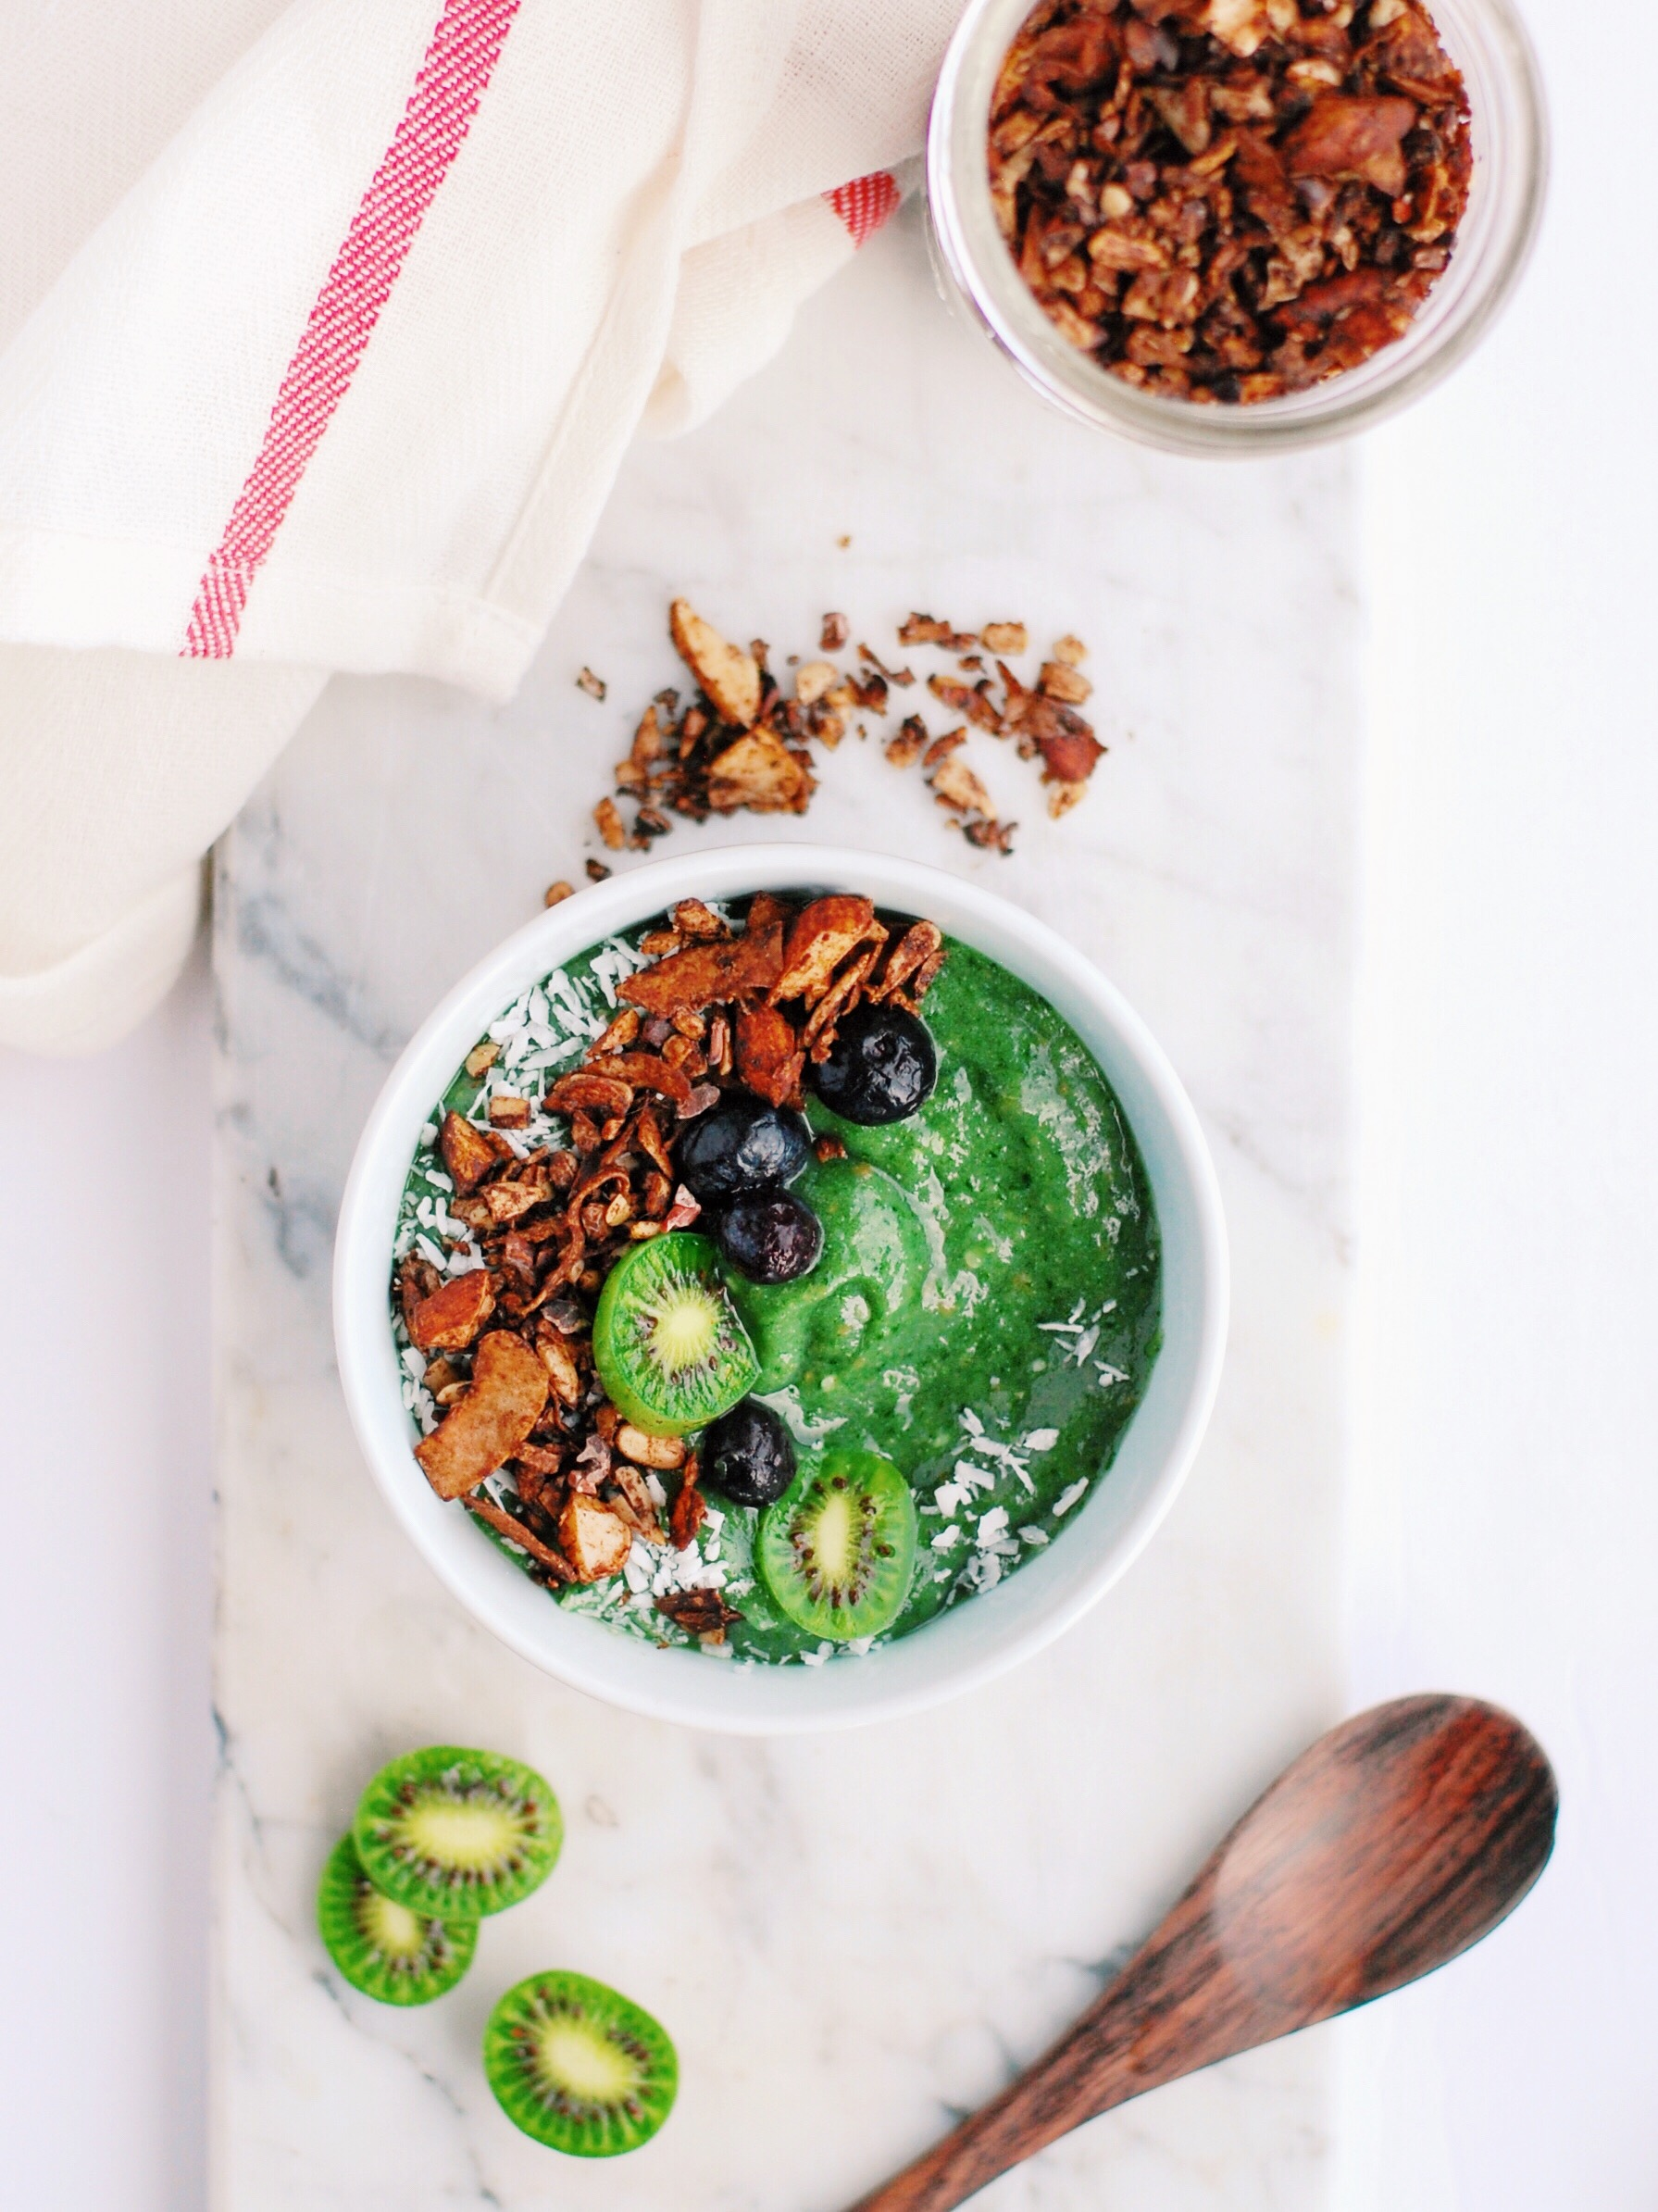 Mint Green Smoothie with Chocolate Grain-Free Granola - a refreshing and delicious combo that just never gets old! Paleo, vegan, and gluten free to please many types of eaters! - Foody First - #vegan #plantbased #glutenfree #dairyfree #plaeo #smoothiebowl #healthy #chocolate #grainfree